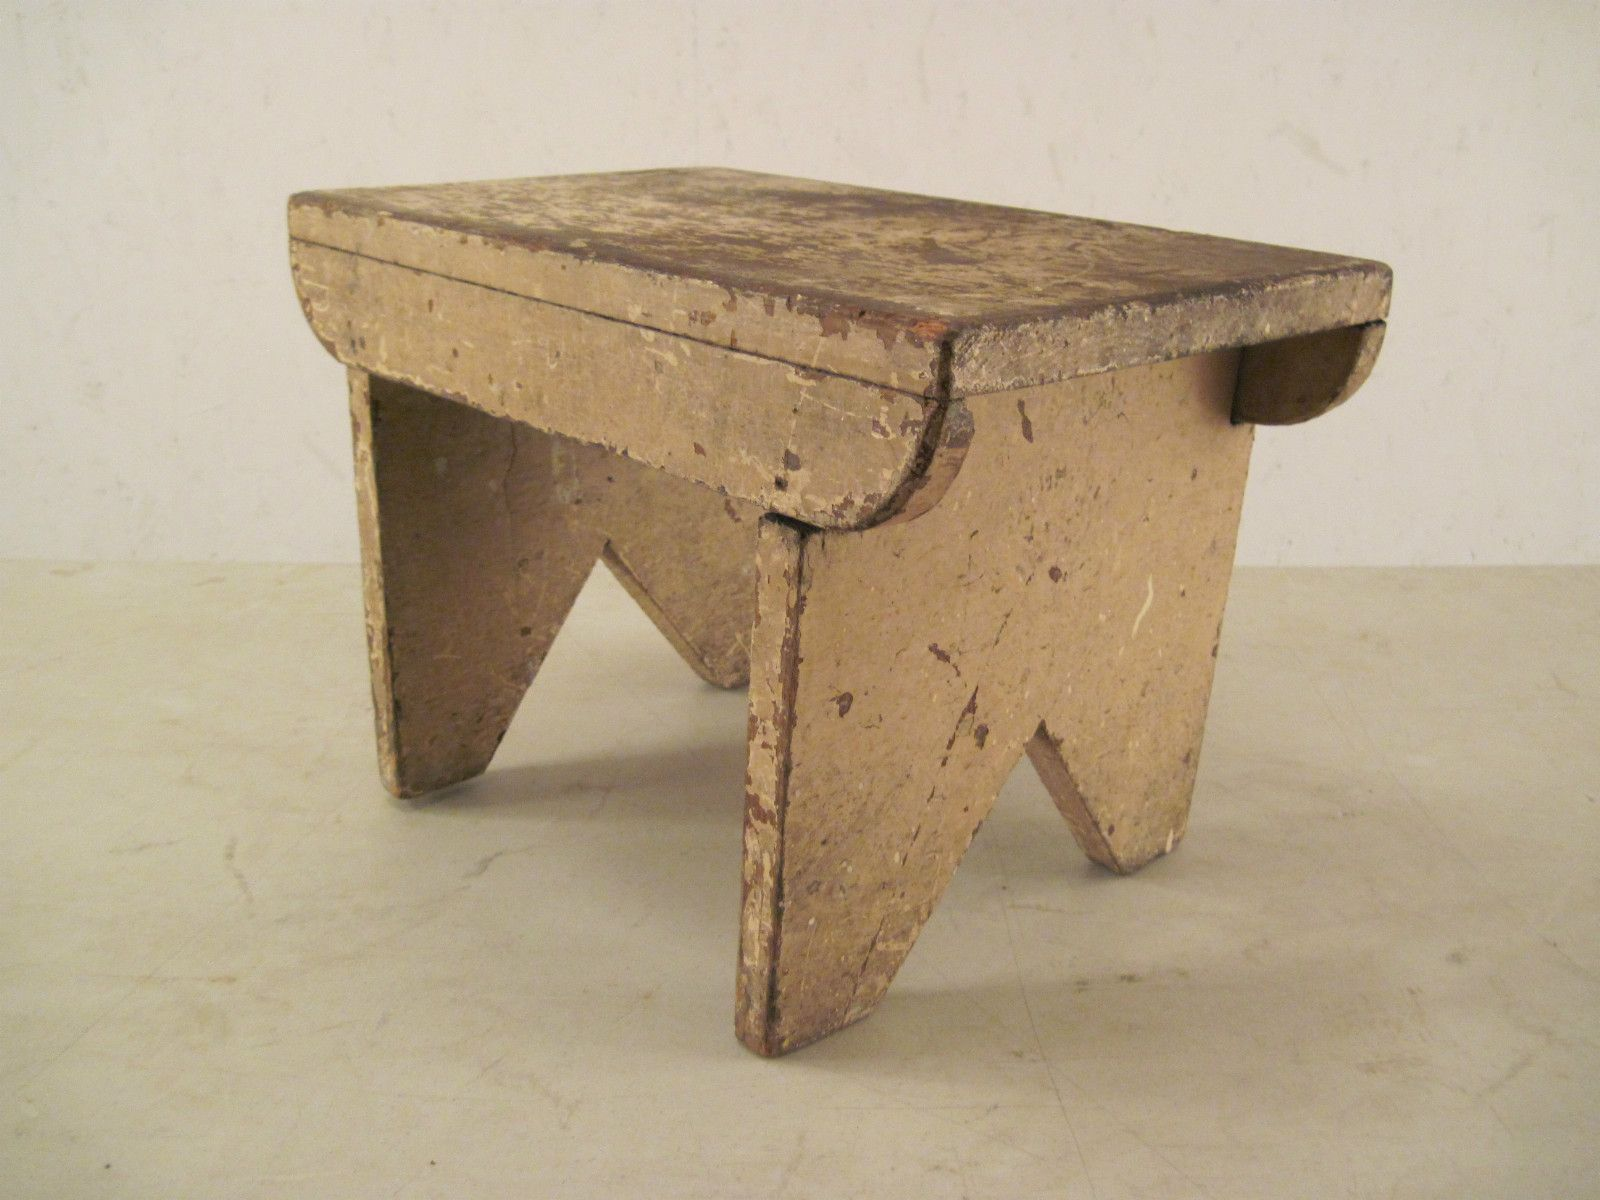 Vtg Antique Old Primitive Foot Stool Bench Chair Folk Art Step Cricket Farm Milk Ebay Patina